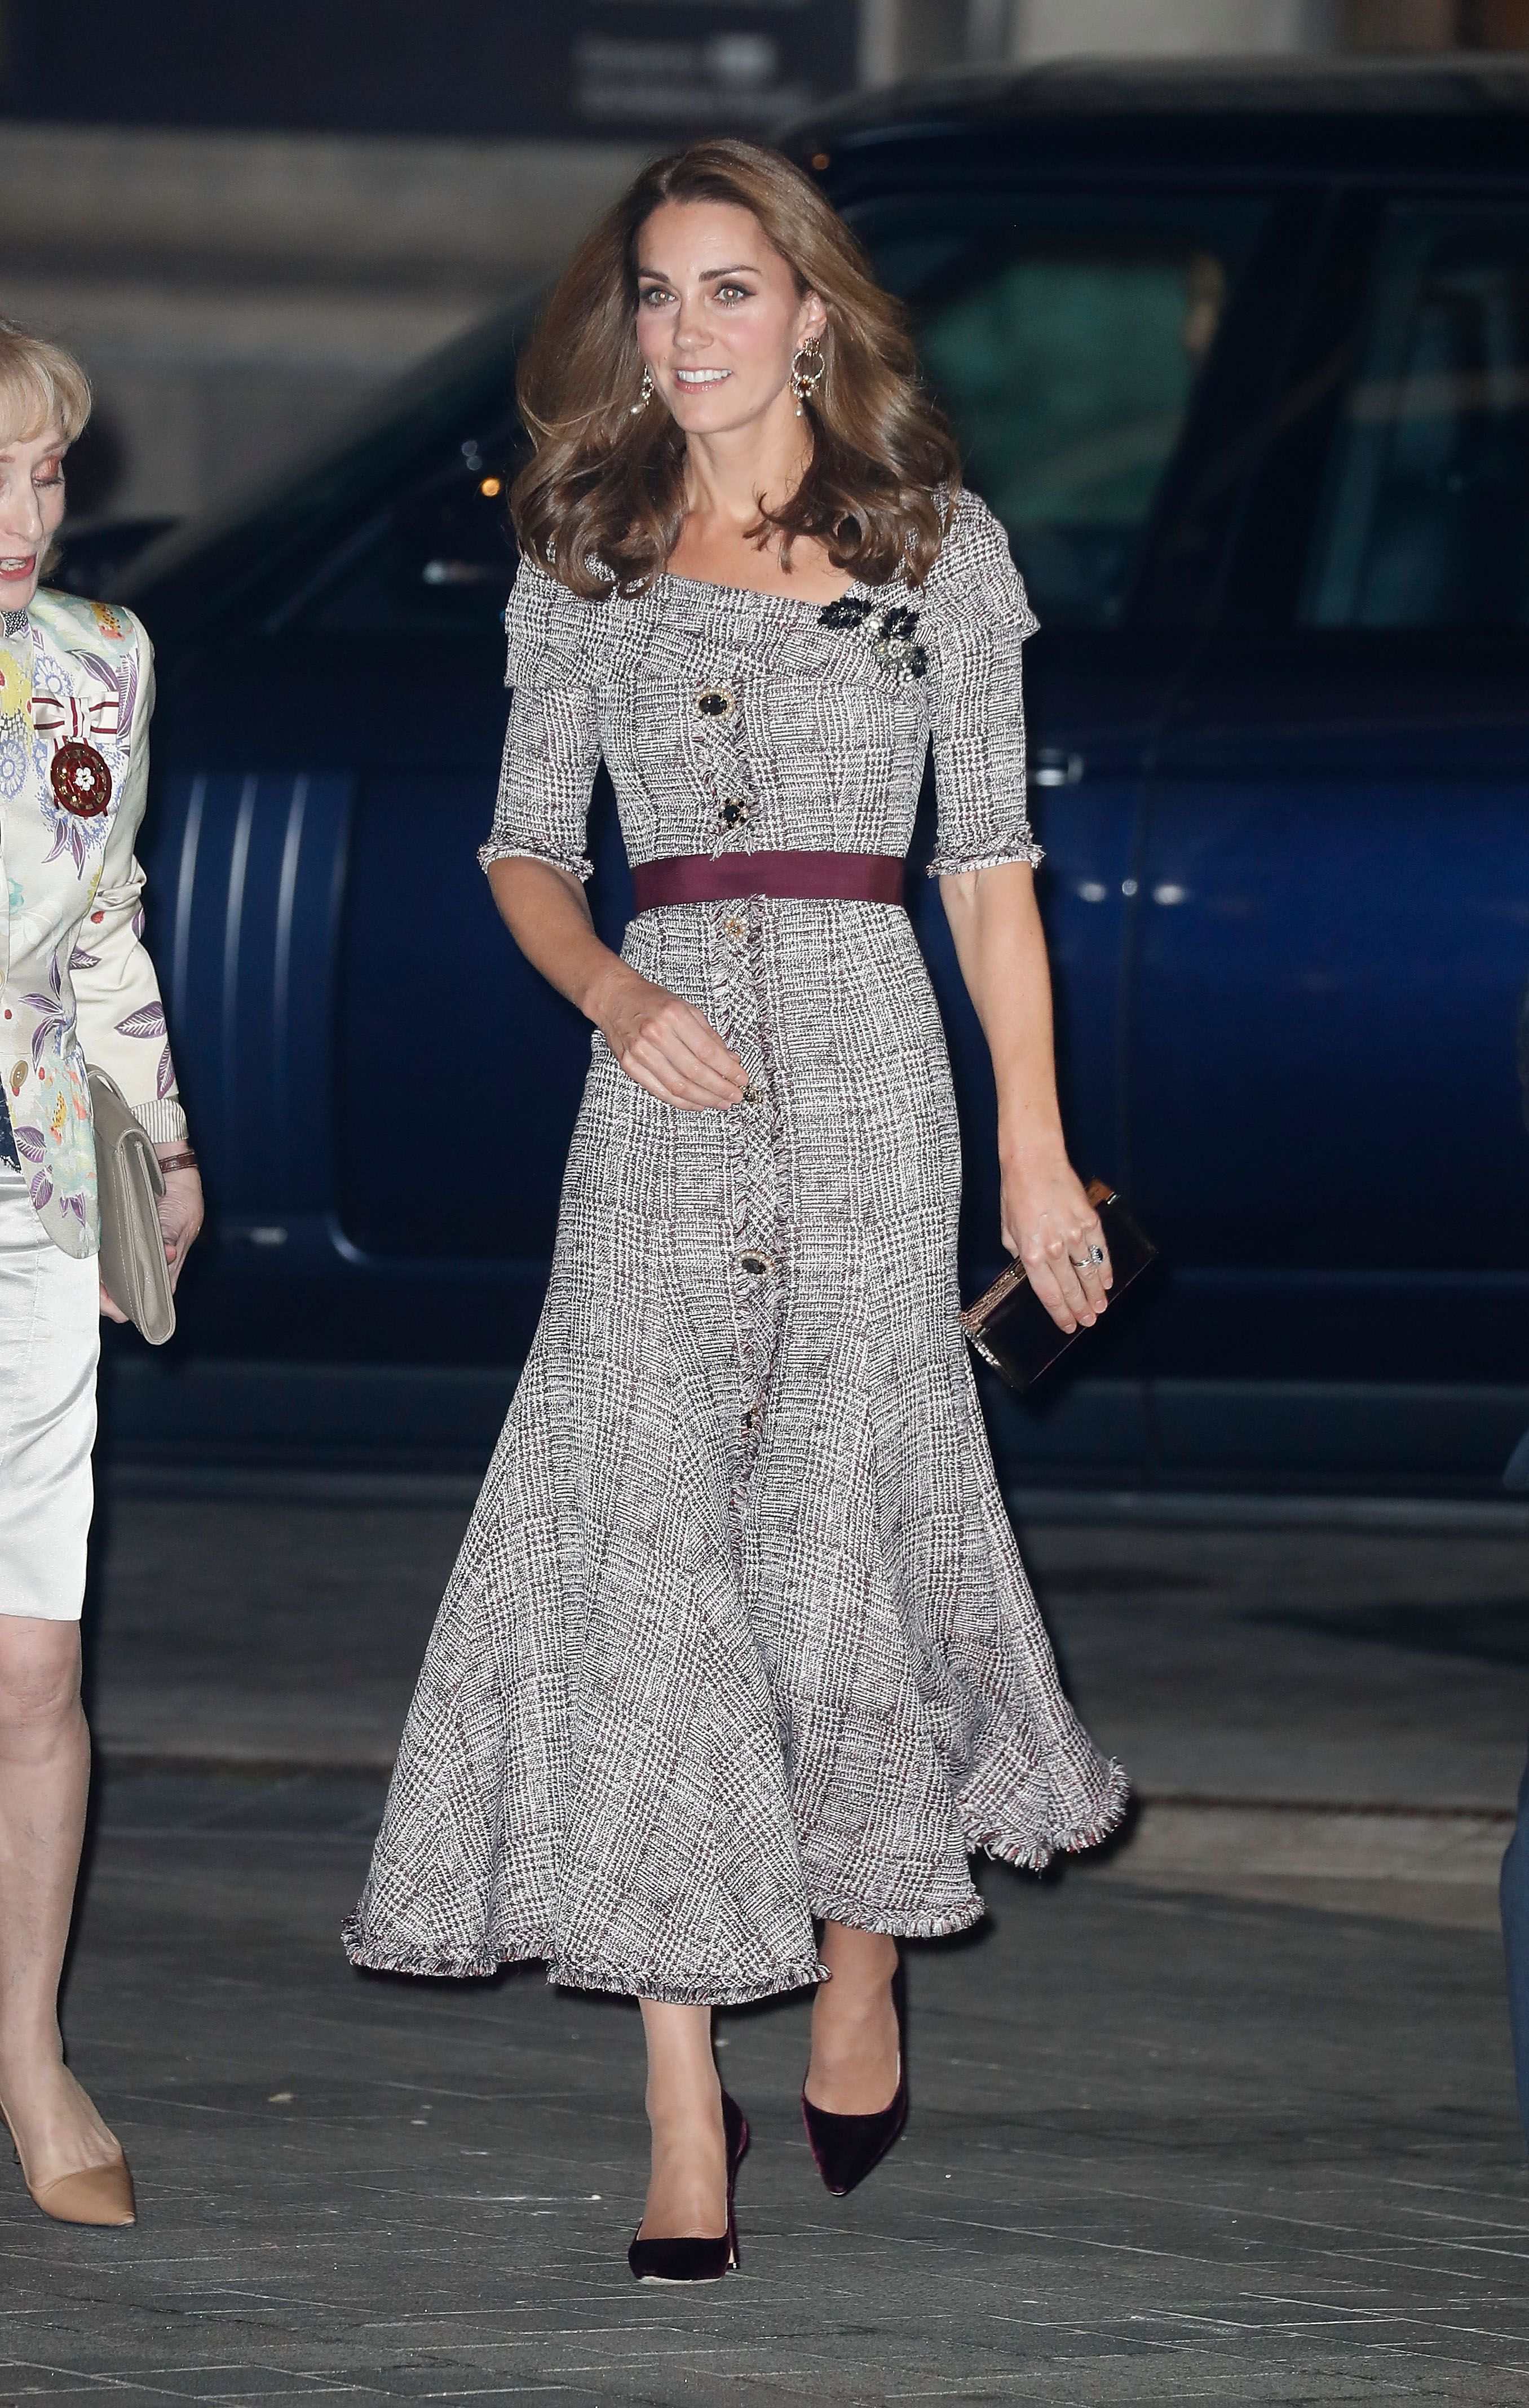 Kate Middleton S Best Fashion Looks Ss Of Cambridge Chic Outfits